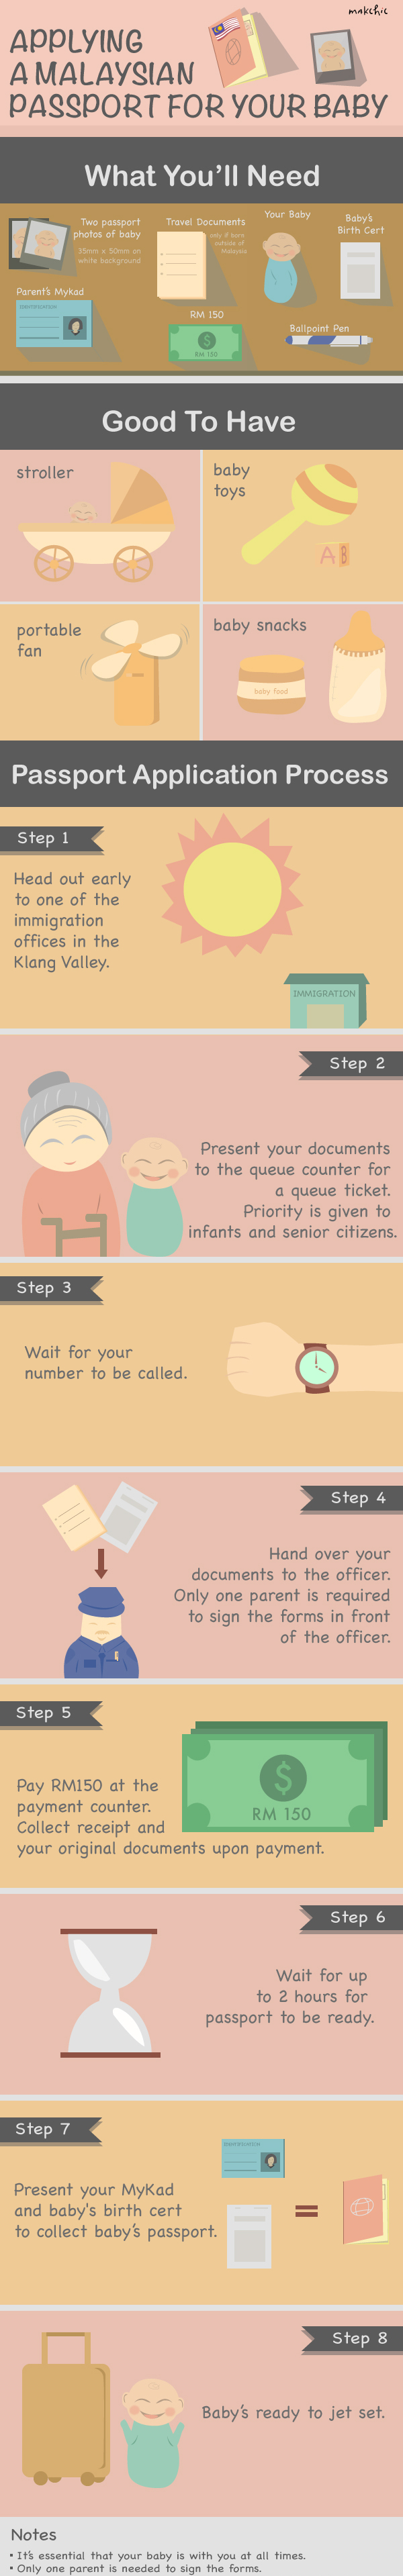 Applyingmalaysianpassportforbabyinfographics